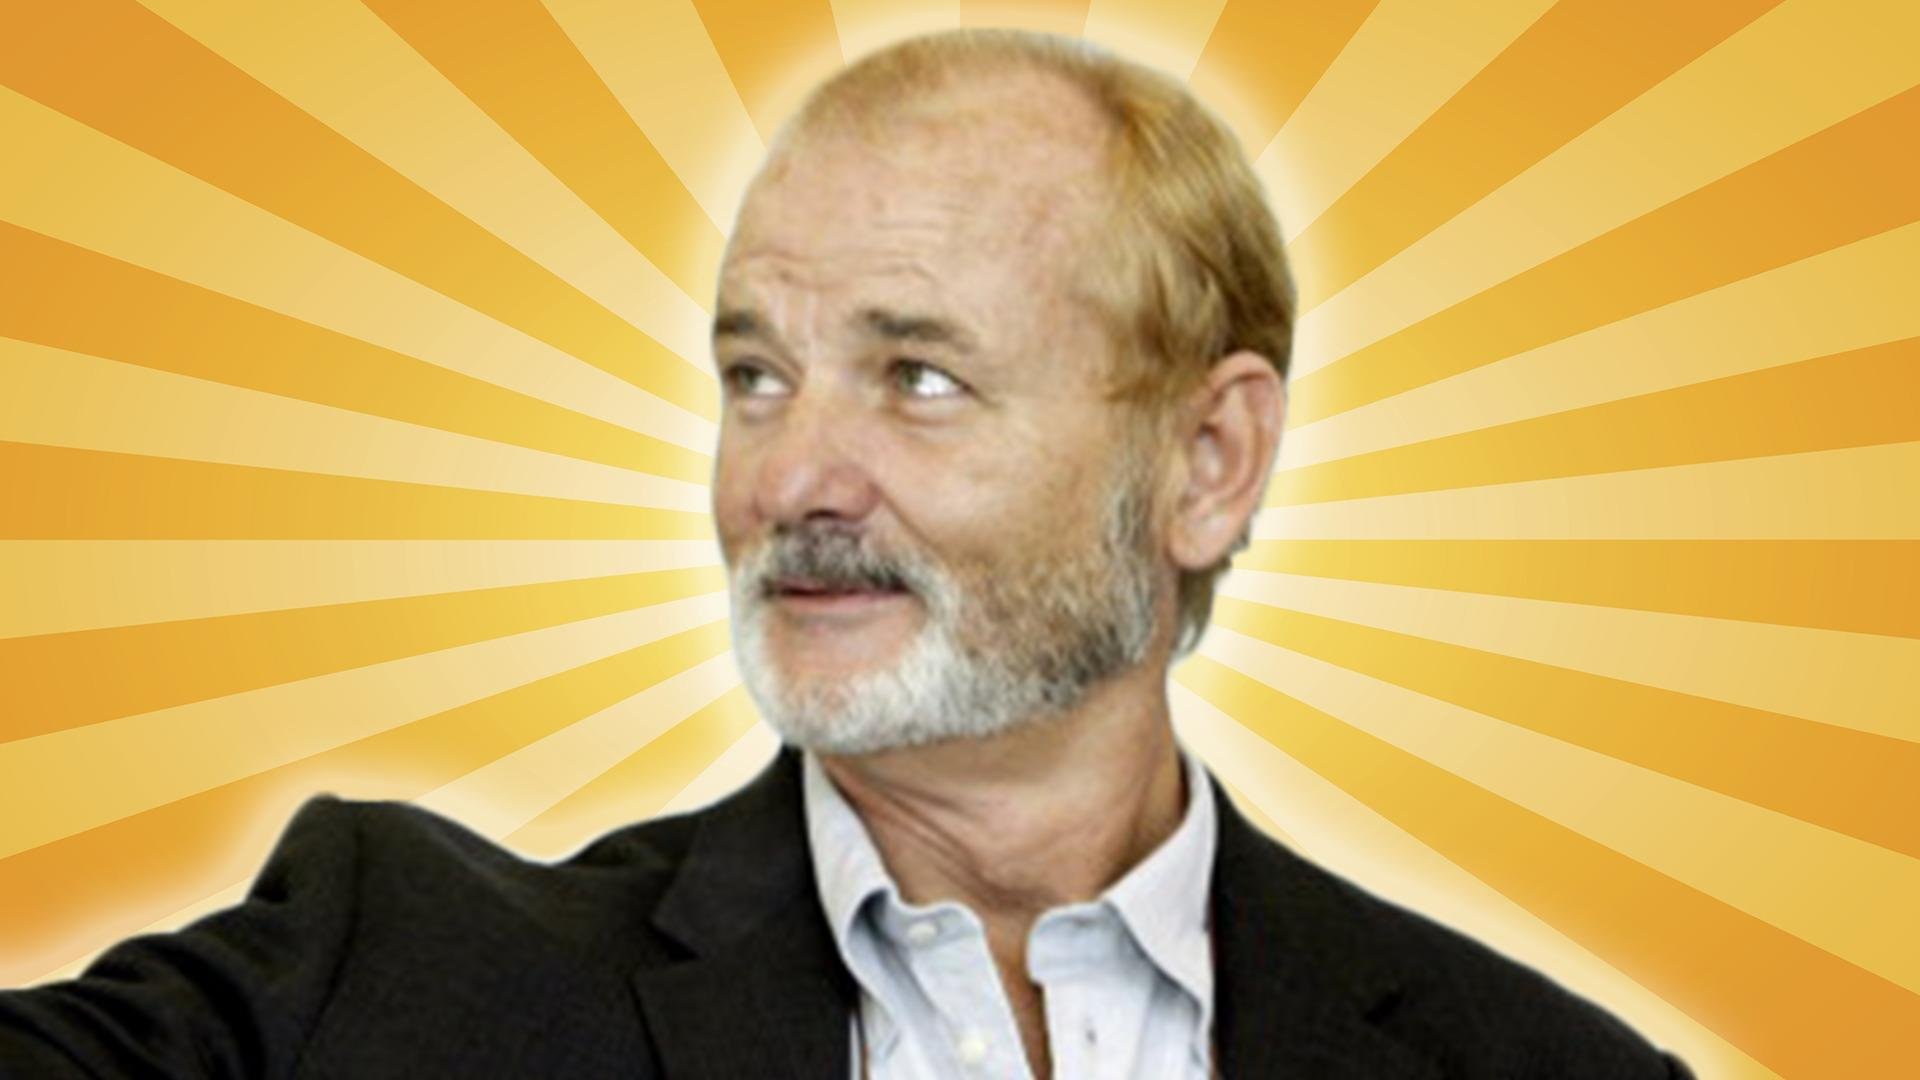 Bill Murray Facts That Will Make You LOL